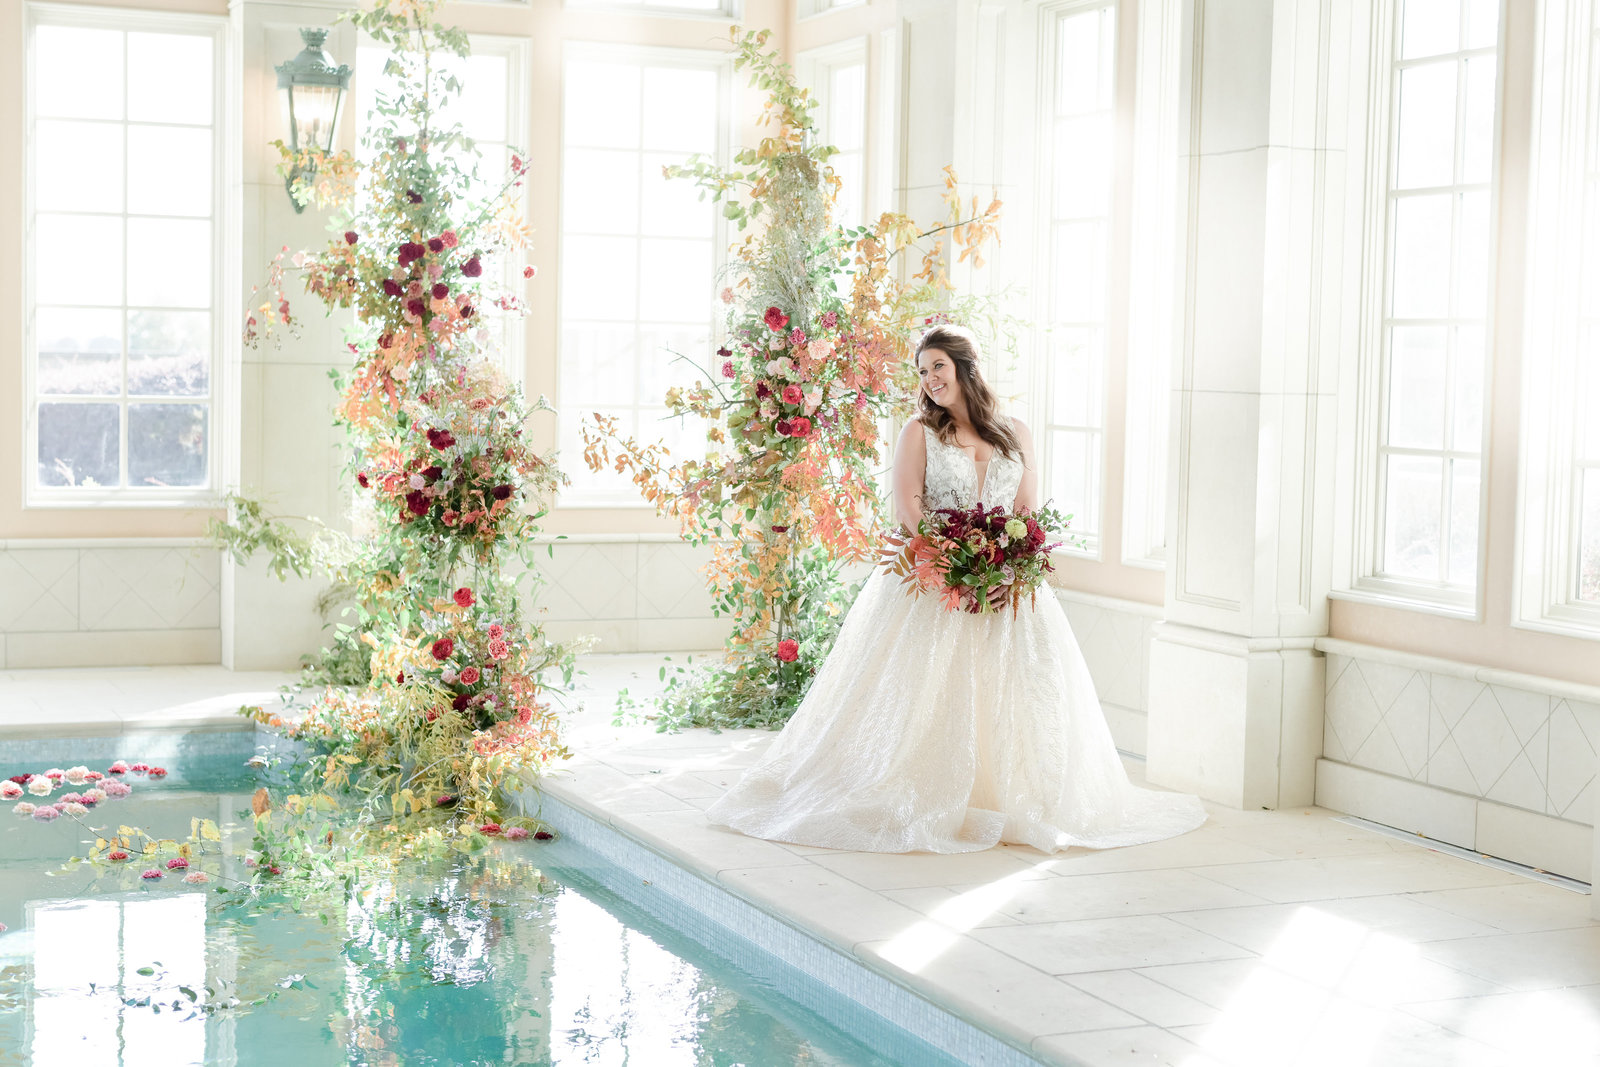 Gorgous bride stands with bouquet in front of floral installation next to pool